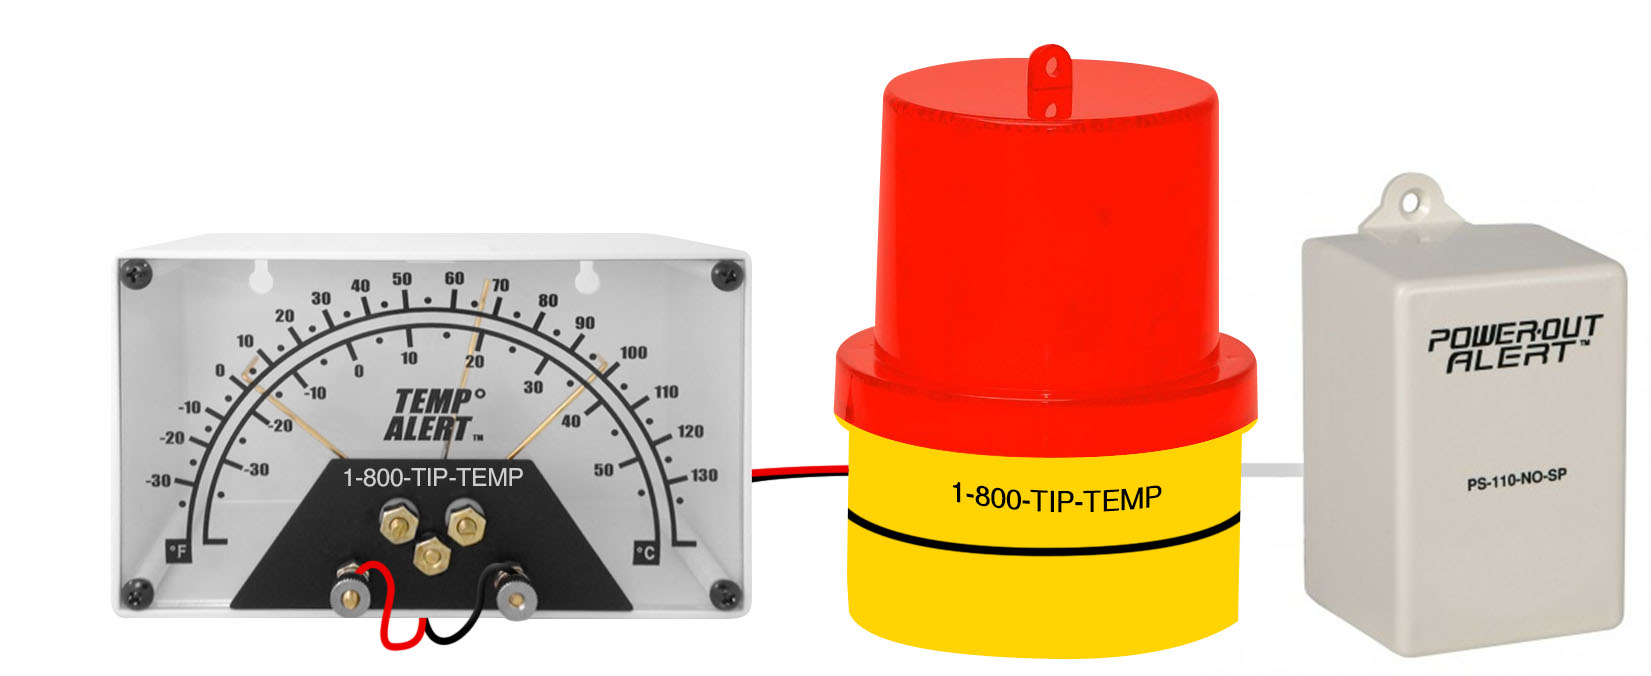 TIPALM007: Adjustable Temperature and Power Out Warning Light